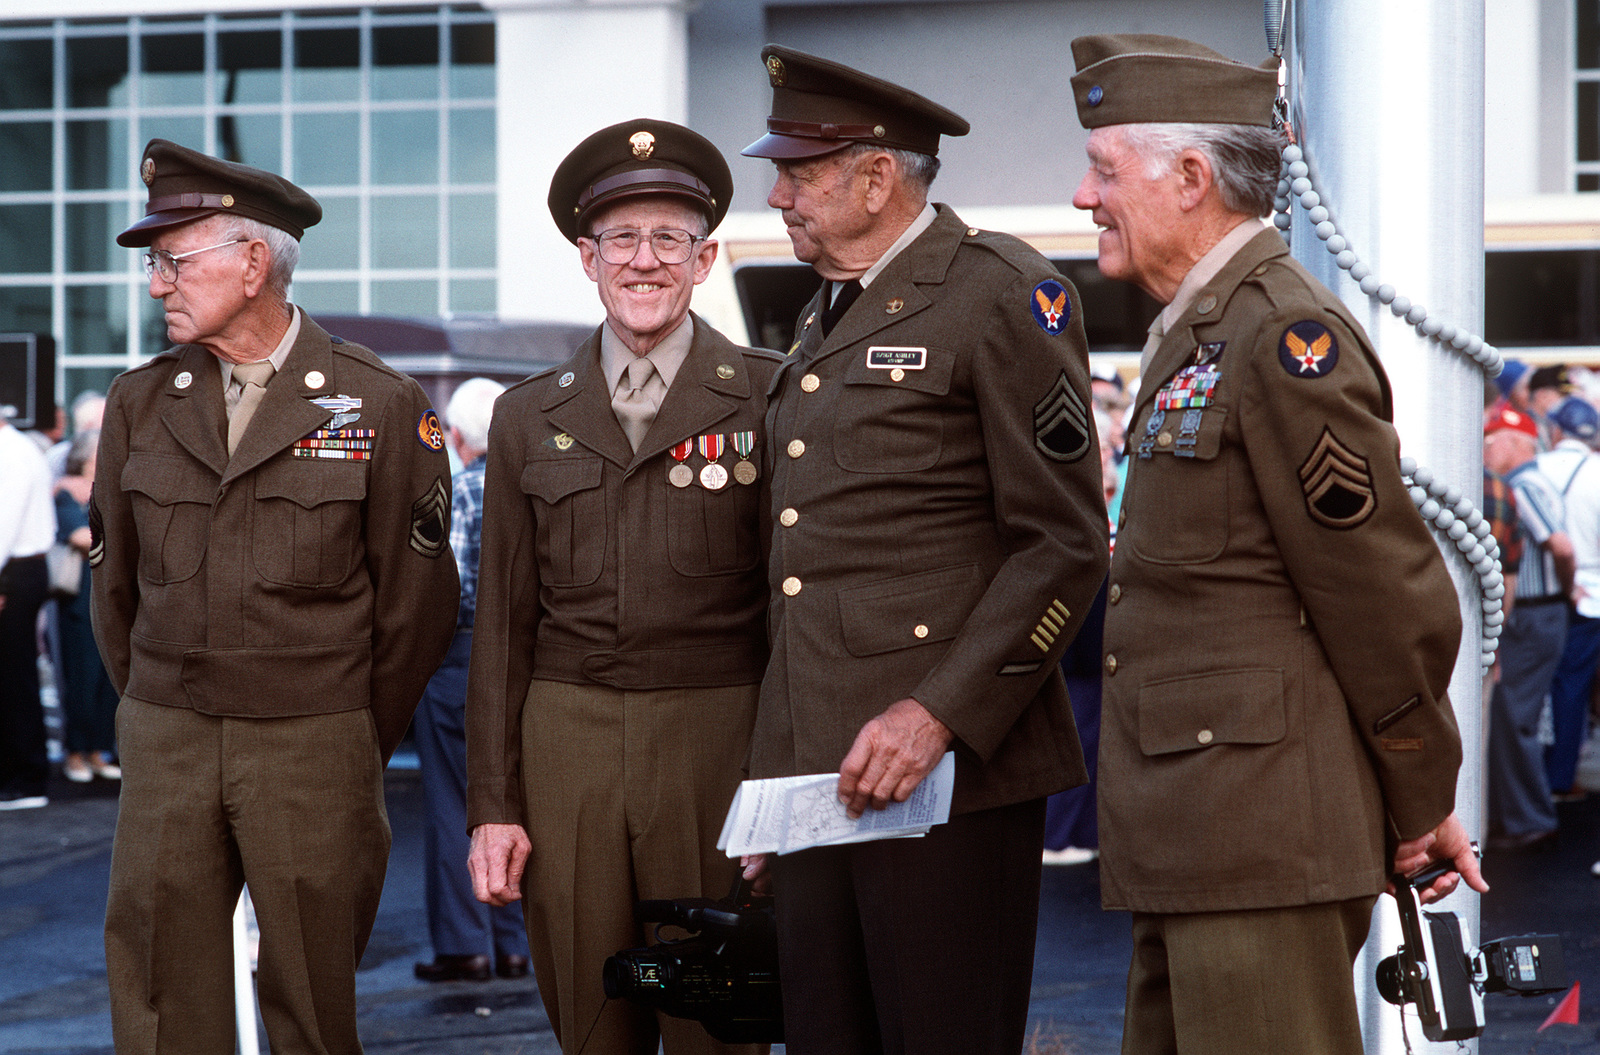 Four former 8th Air Force members (from left) Bill Wagner, Earl Krieger, Edward Ashley, and Wilbur Richardson participate in grand opening ceremonies at the Mighty Eighth Air Force Heritage Museum. Exact Date Shot Unknown Published in AIRMAN Magazine August 1996